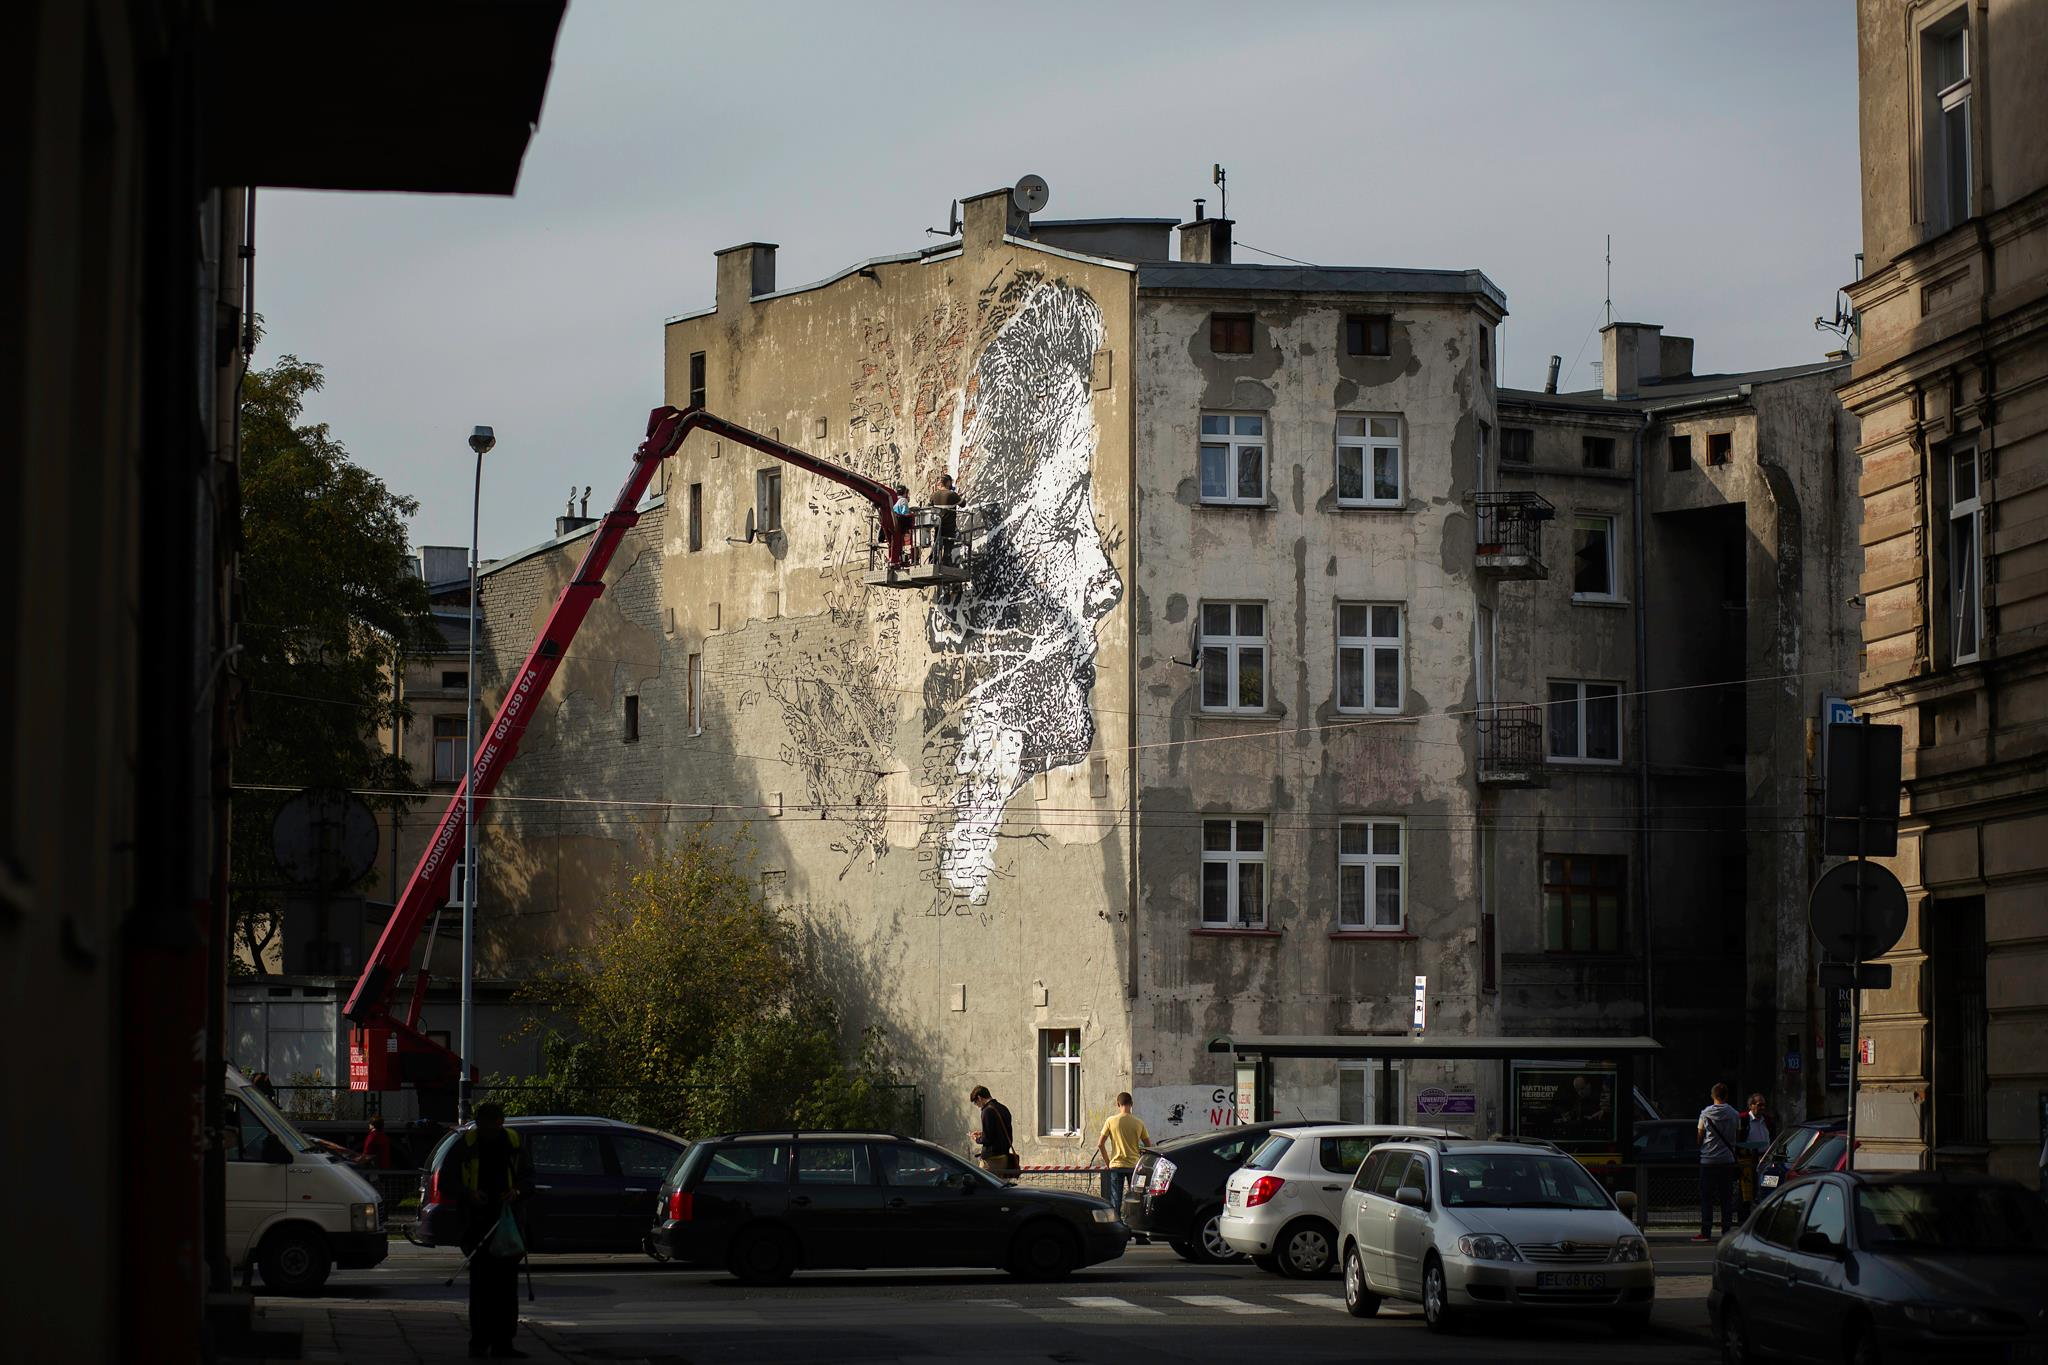 vhils-new-mural-for-galeria-urban-forms-06